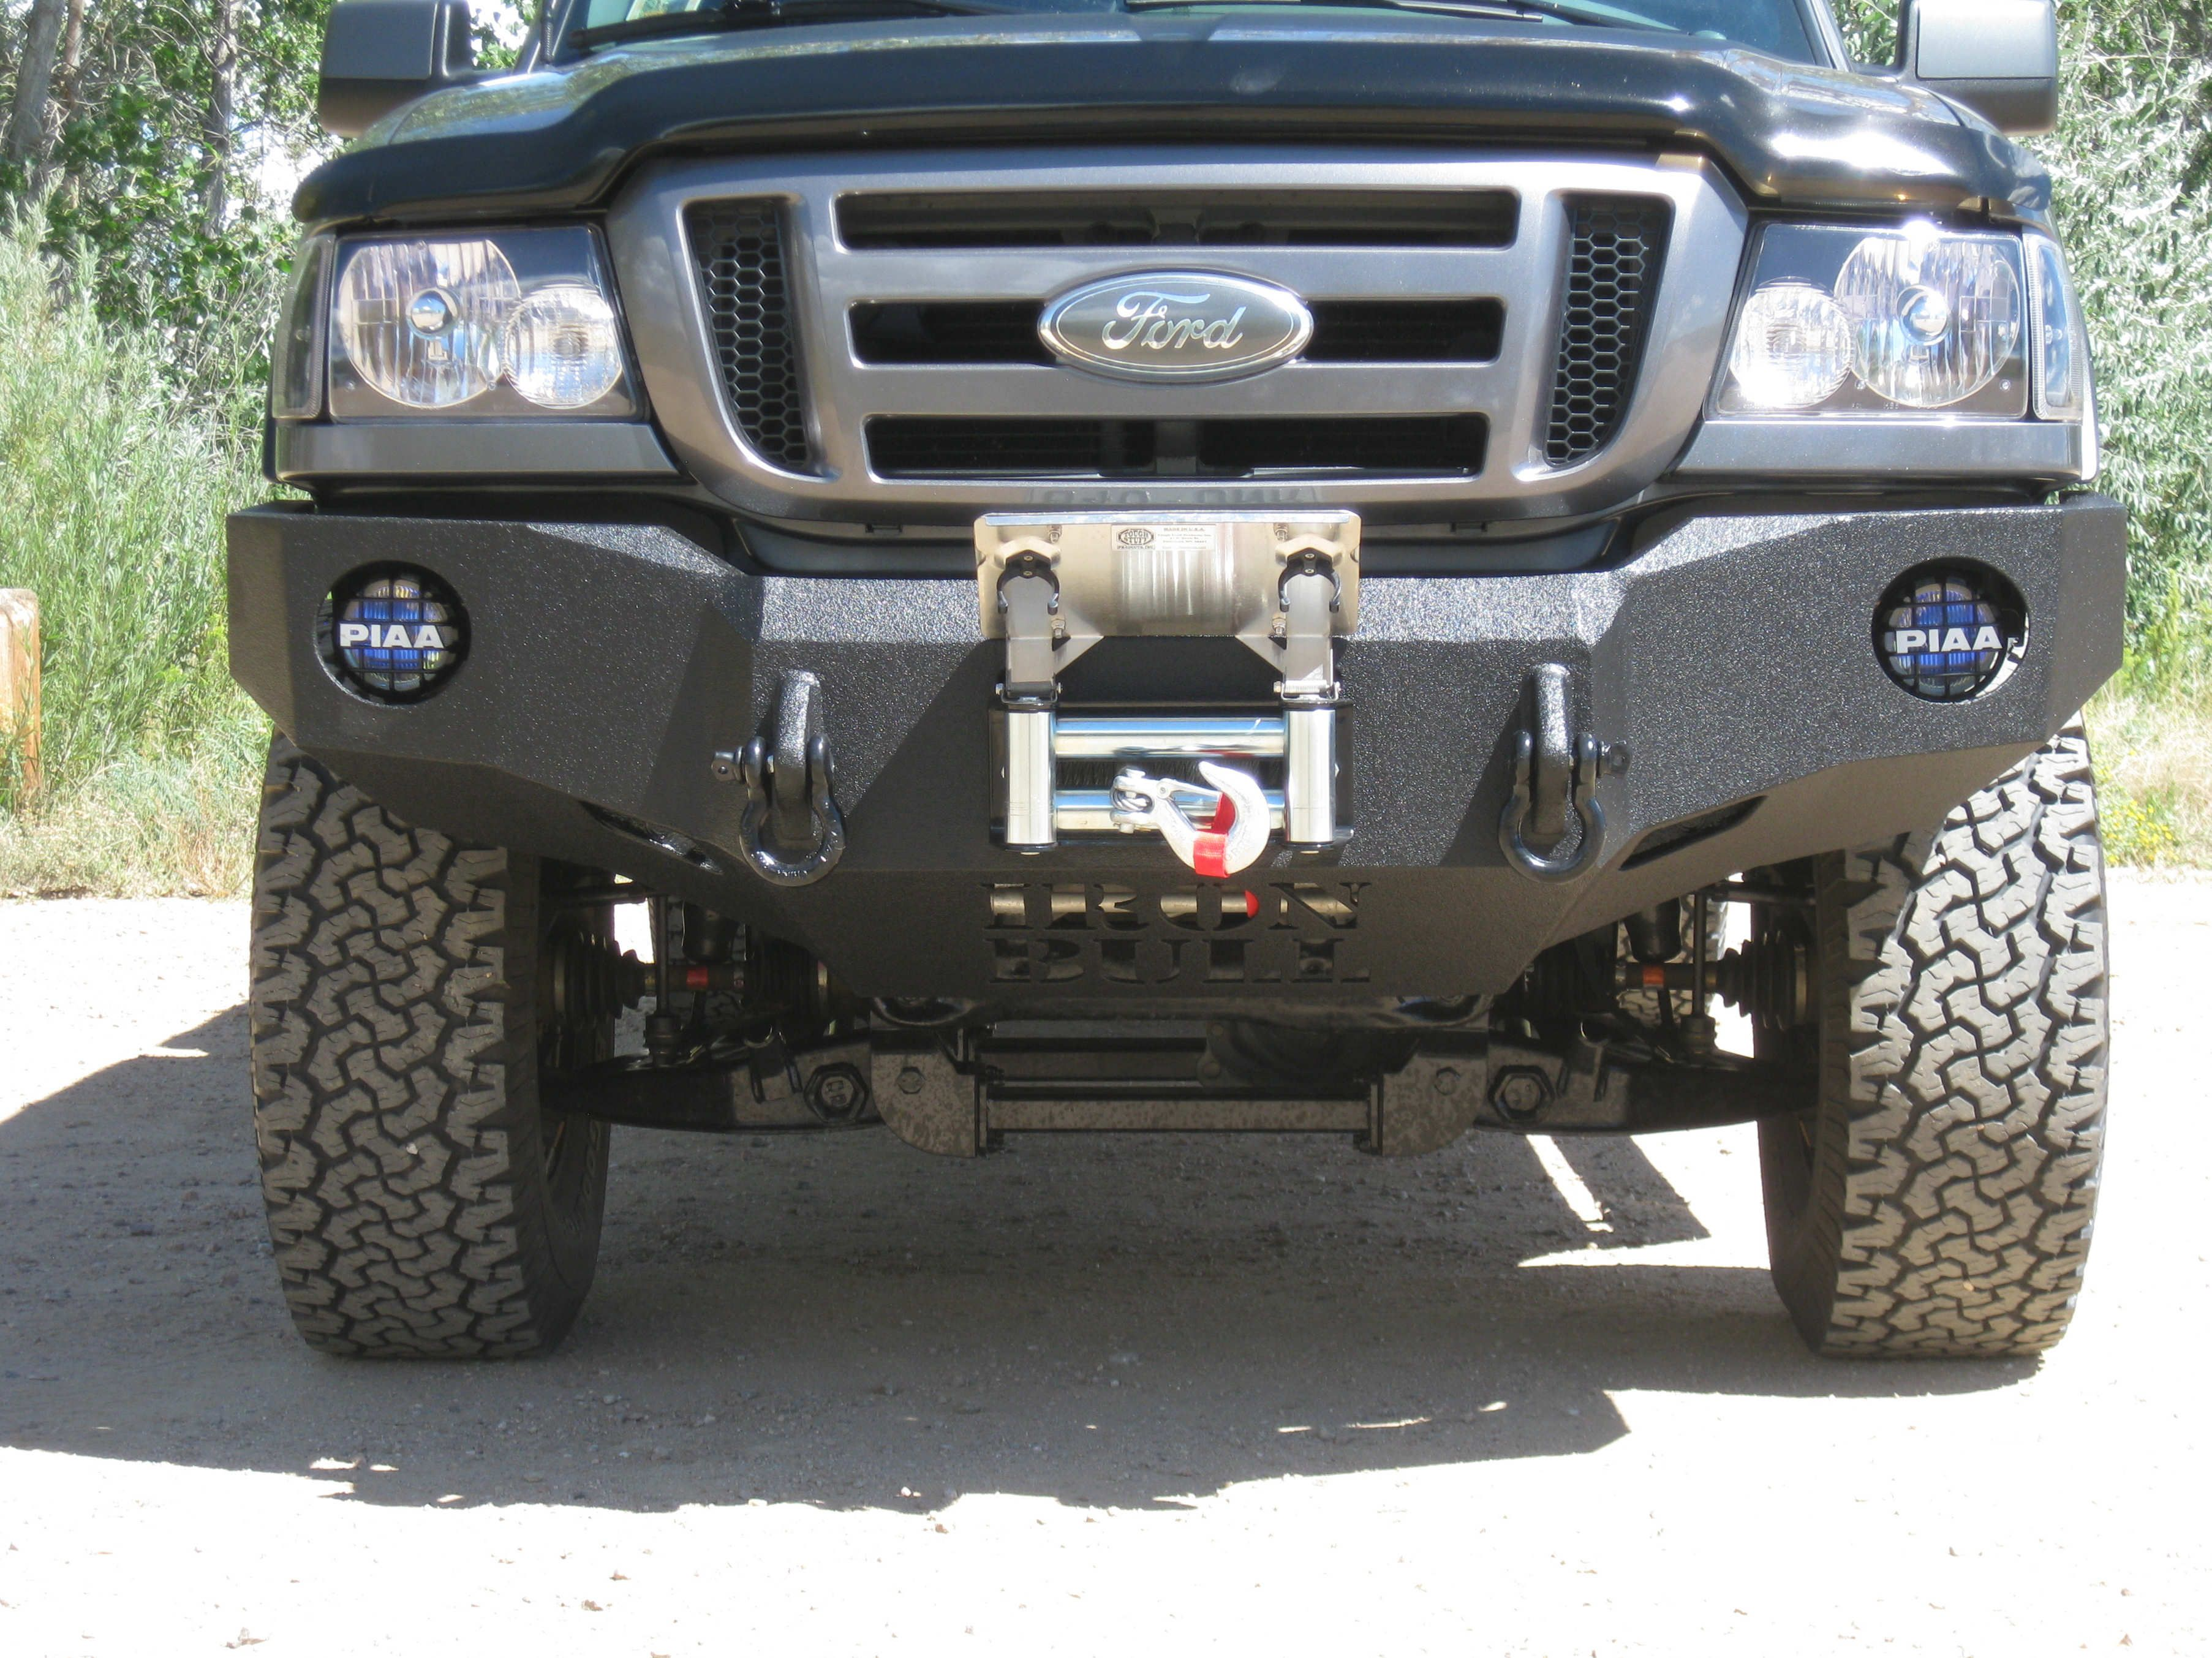 Heavy Duty Off Road Bumpers Ranger Forums The Ultimate Ford Ranger Resource Camionetas Autos Y Motos Ranger